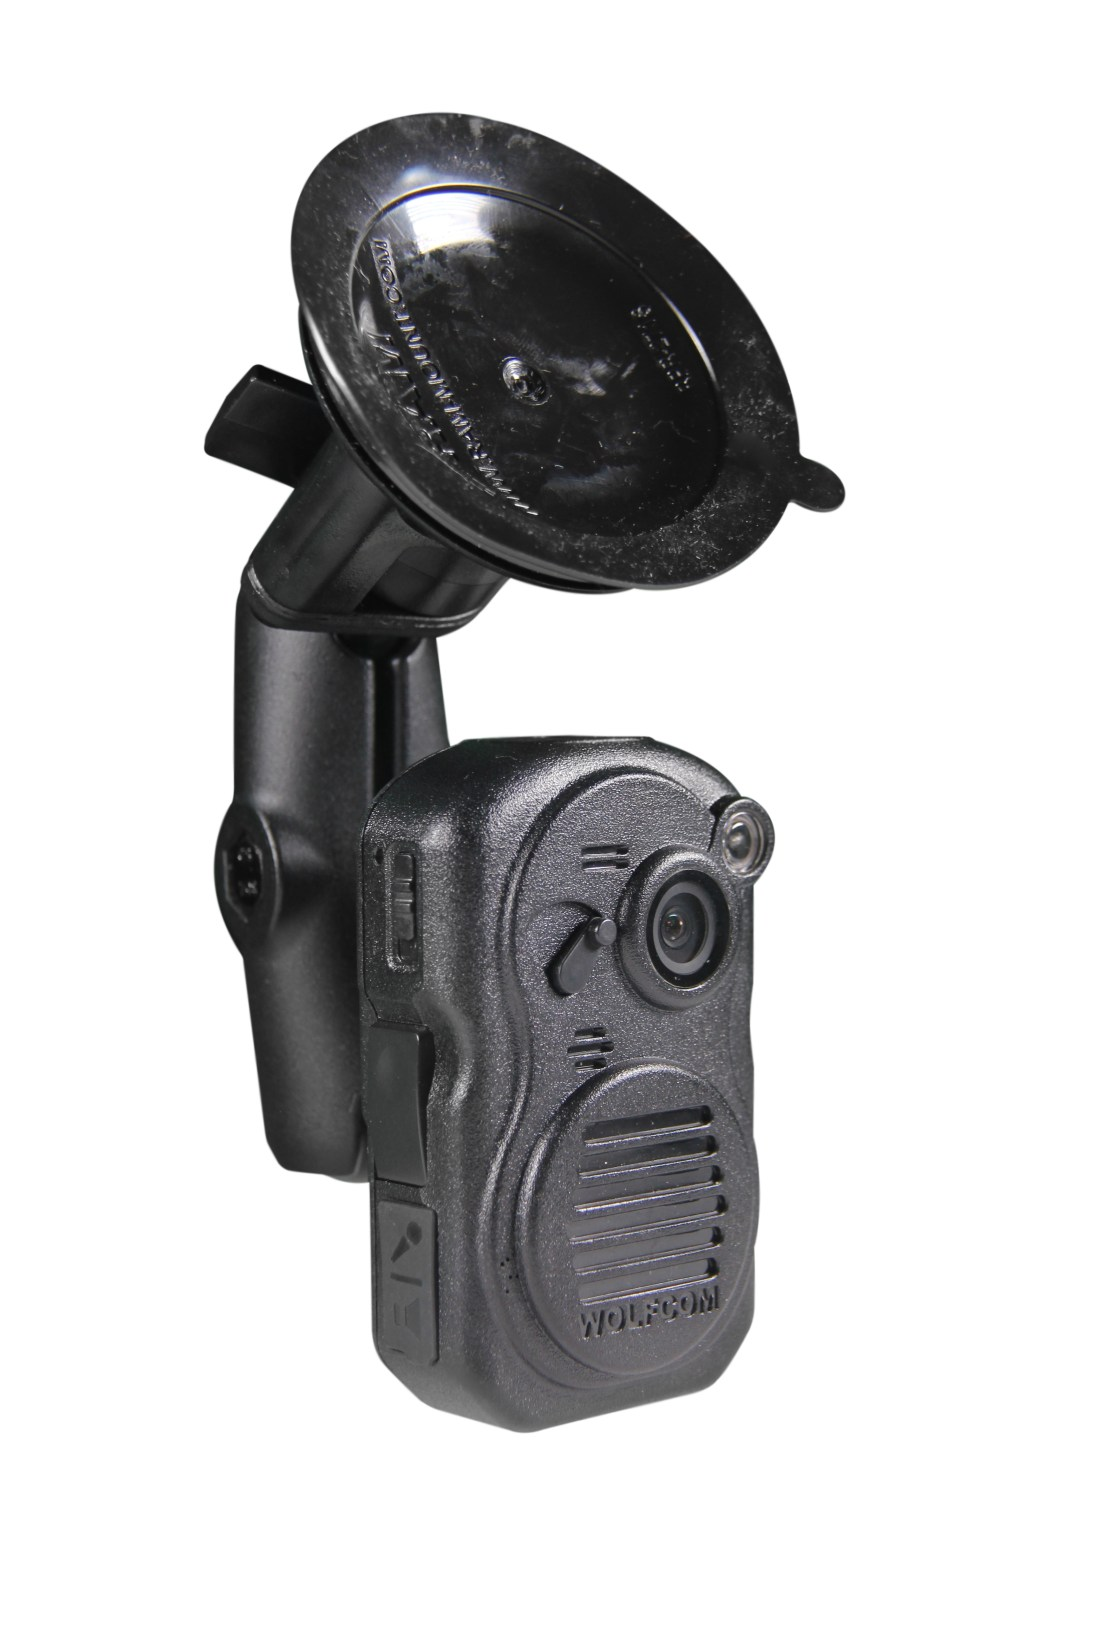 WOLFCOM 3rd eye police body camera being used as an in-car camera